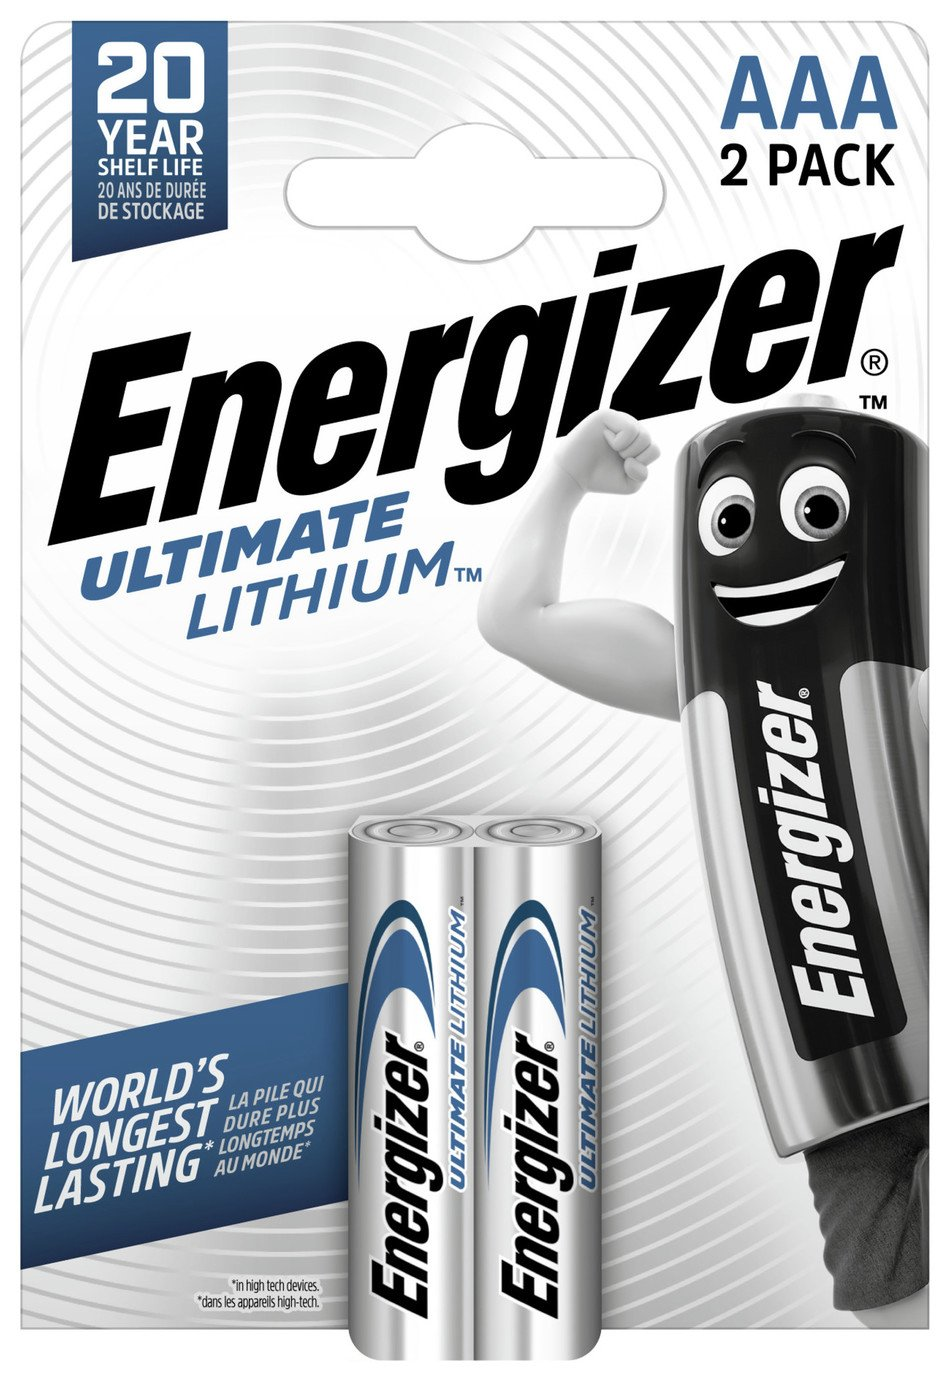 Energizer Ultimate Lithium  AAA Batteries - 2 Pack